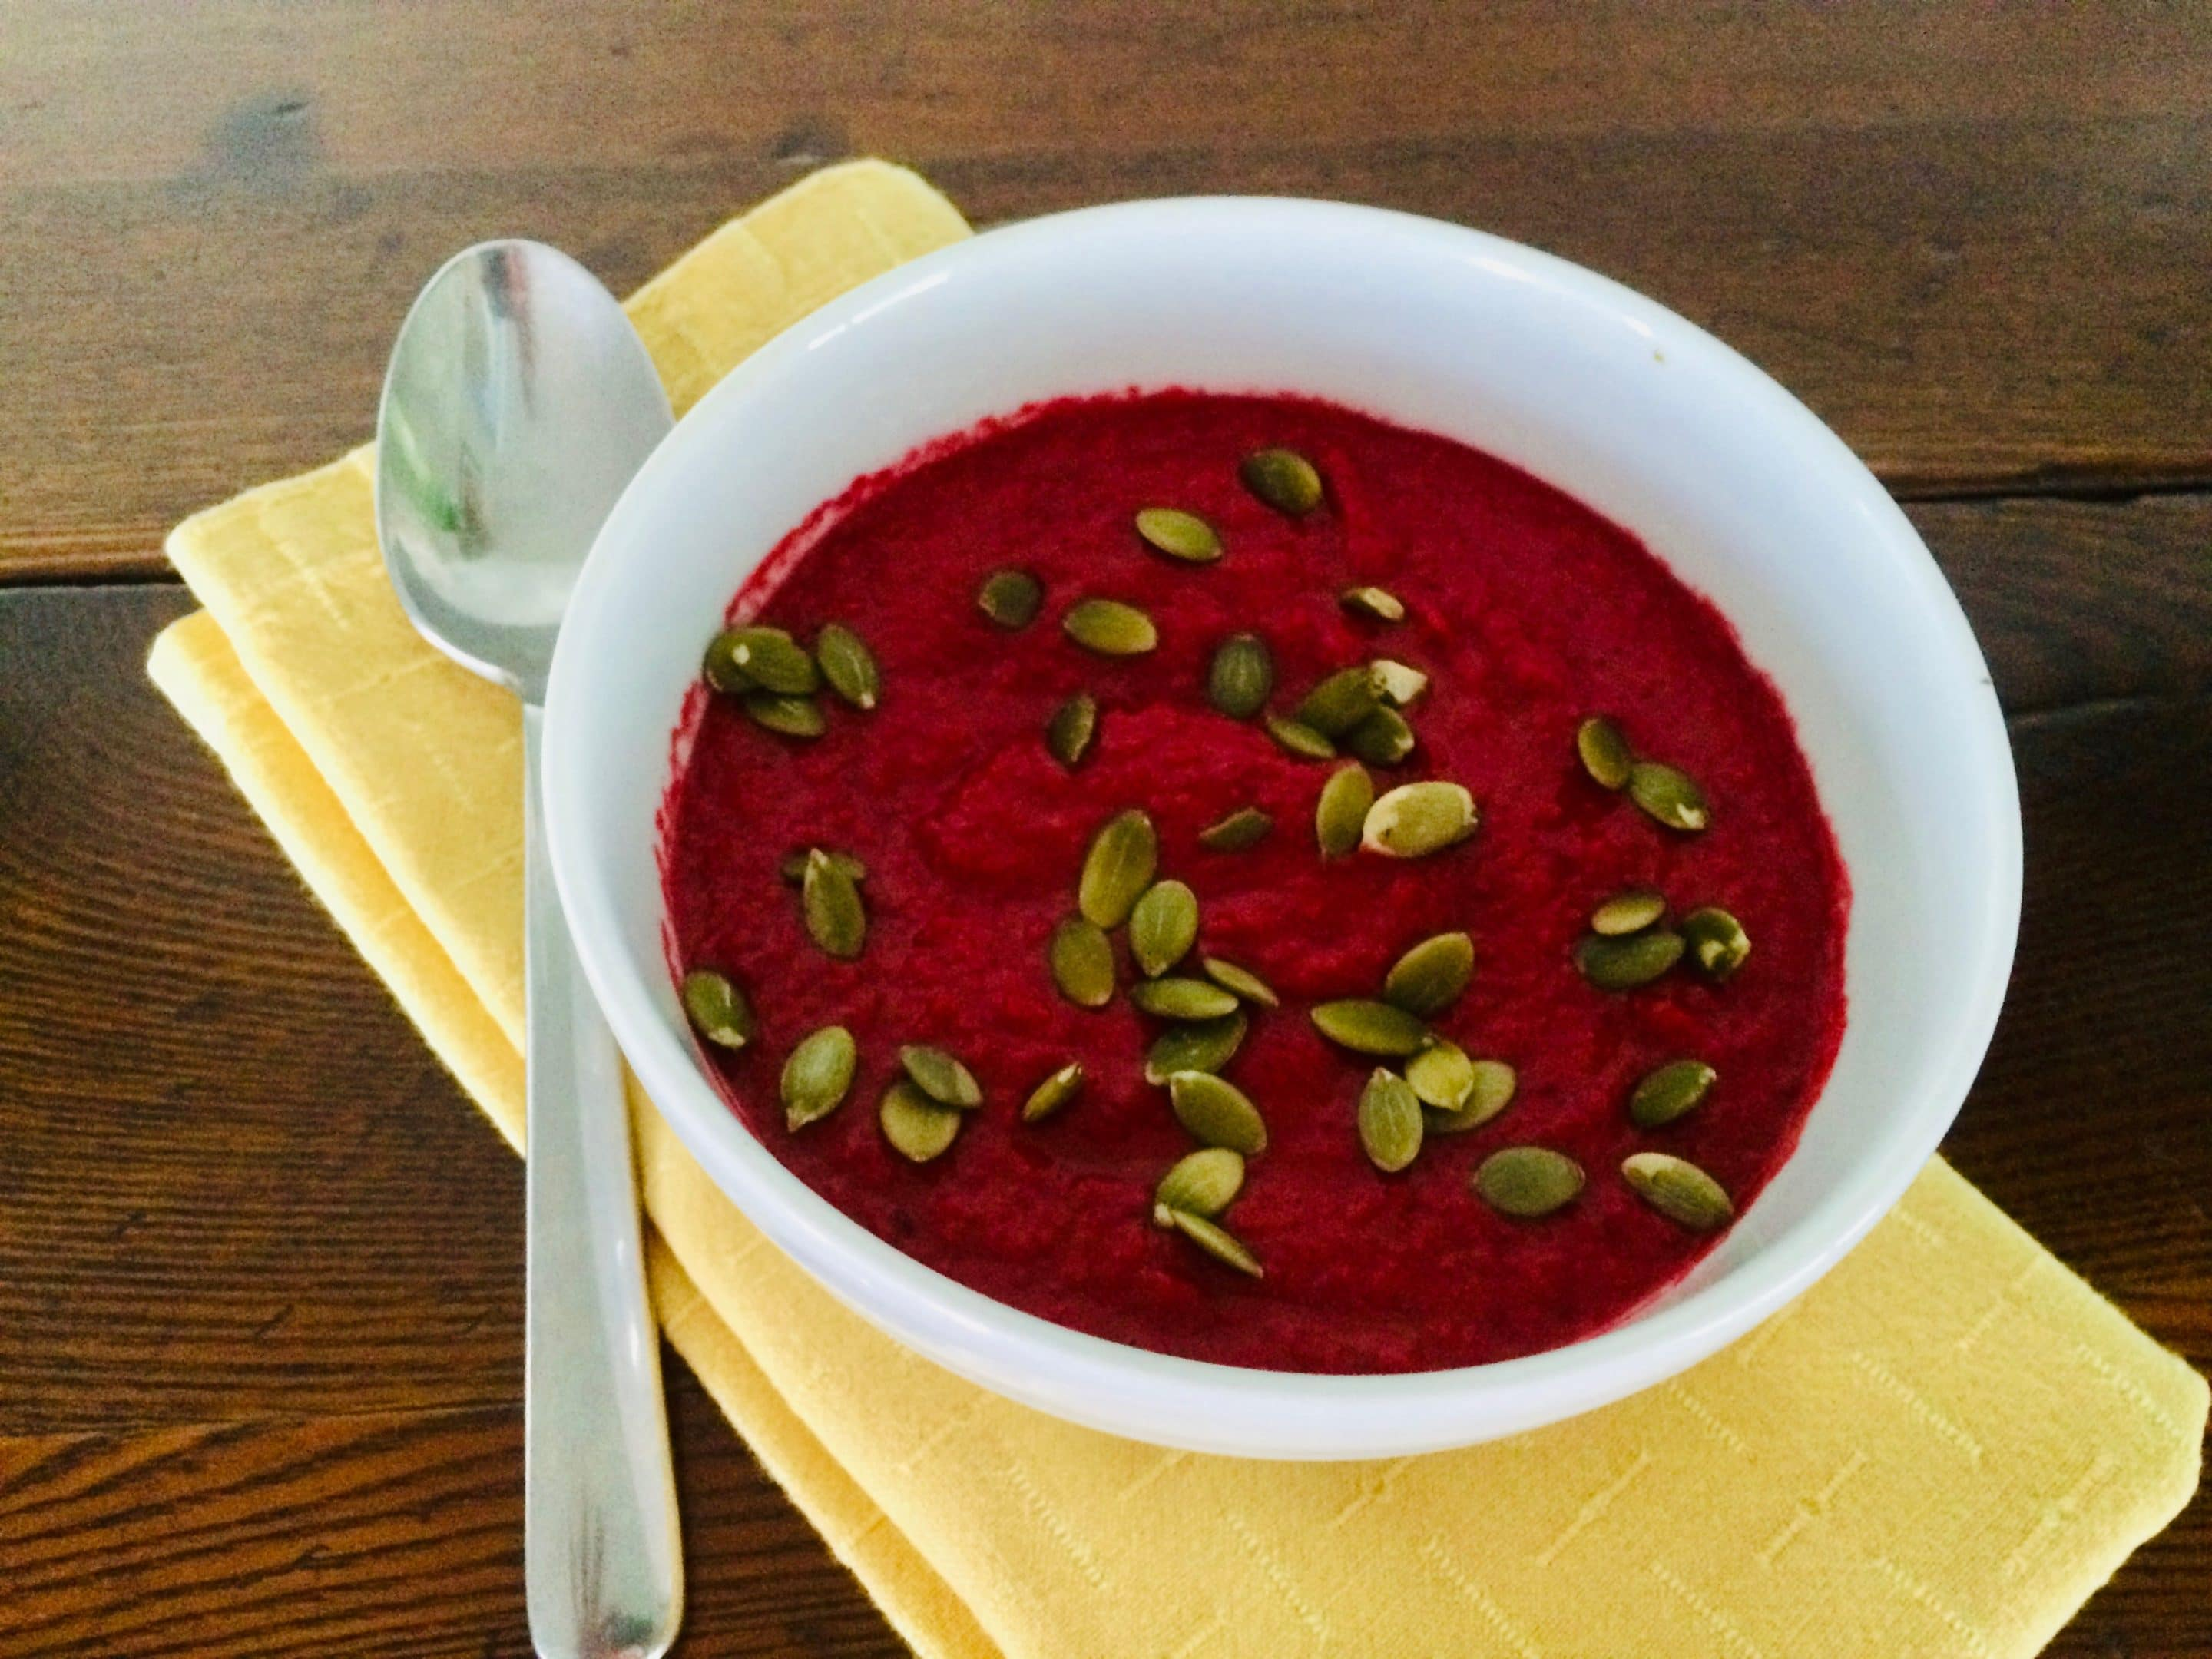 Creamy Raw Beet Soup with Toasted Pumpkin Seeds